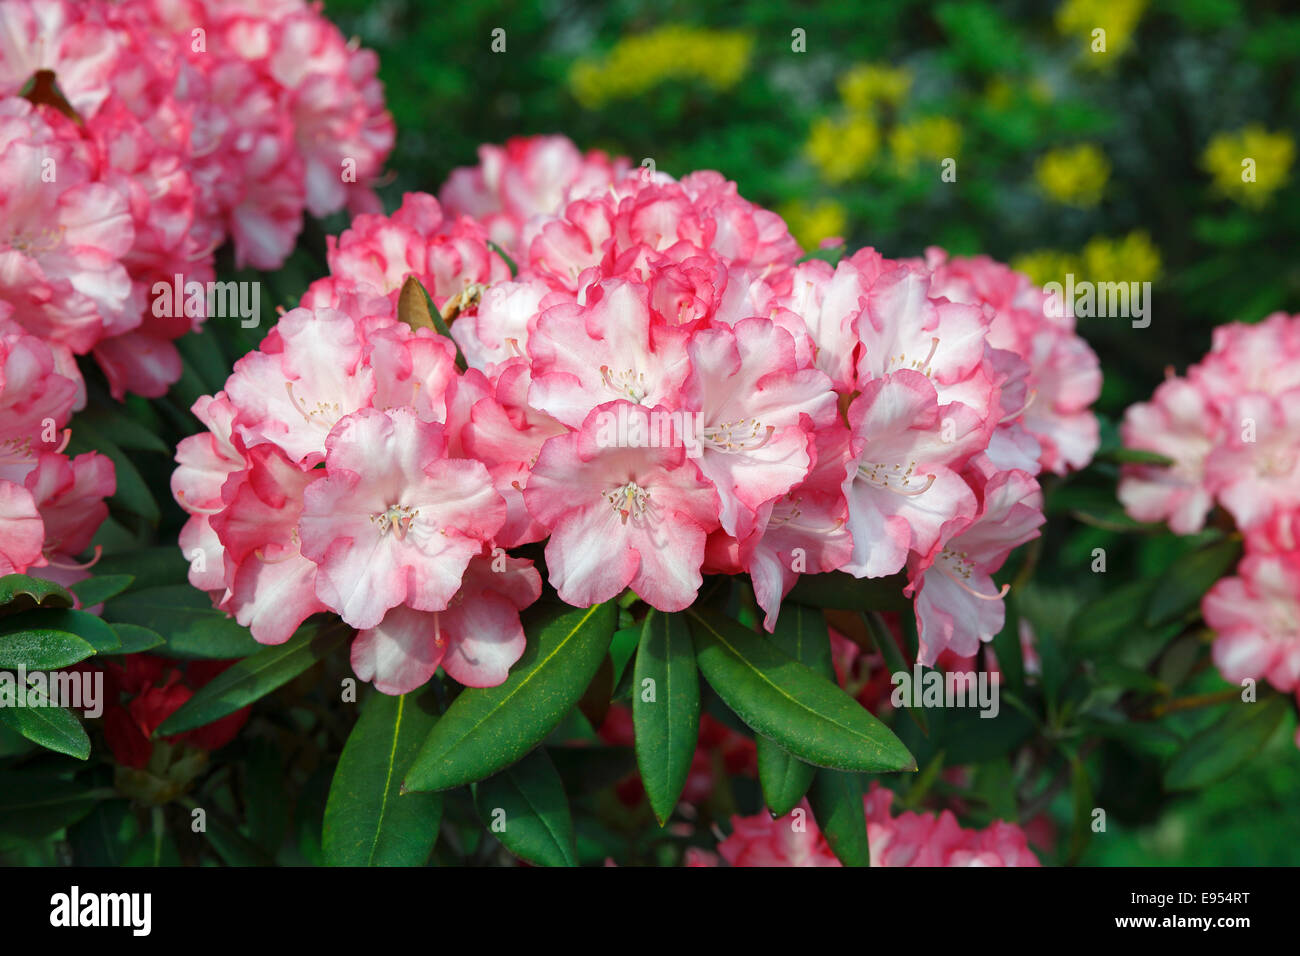 Rhododendron (Rhododendron), flowering - Stock Image